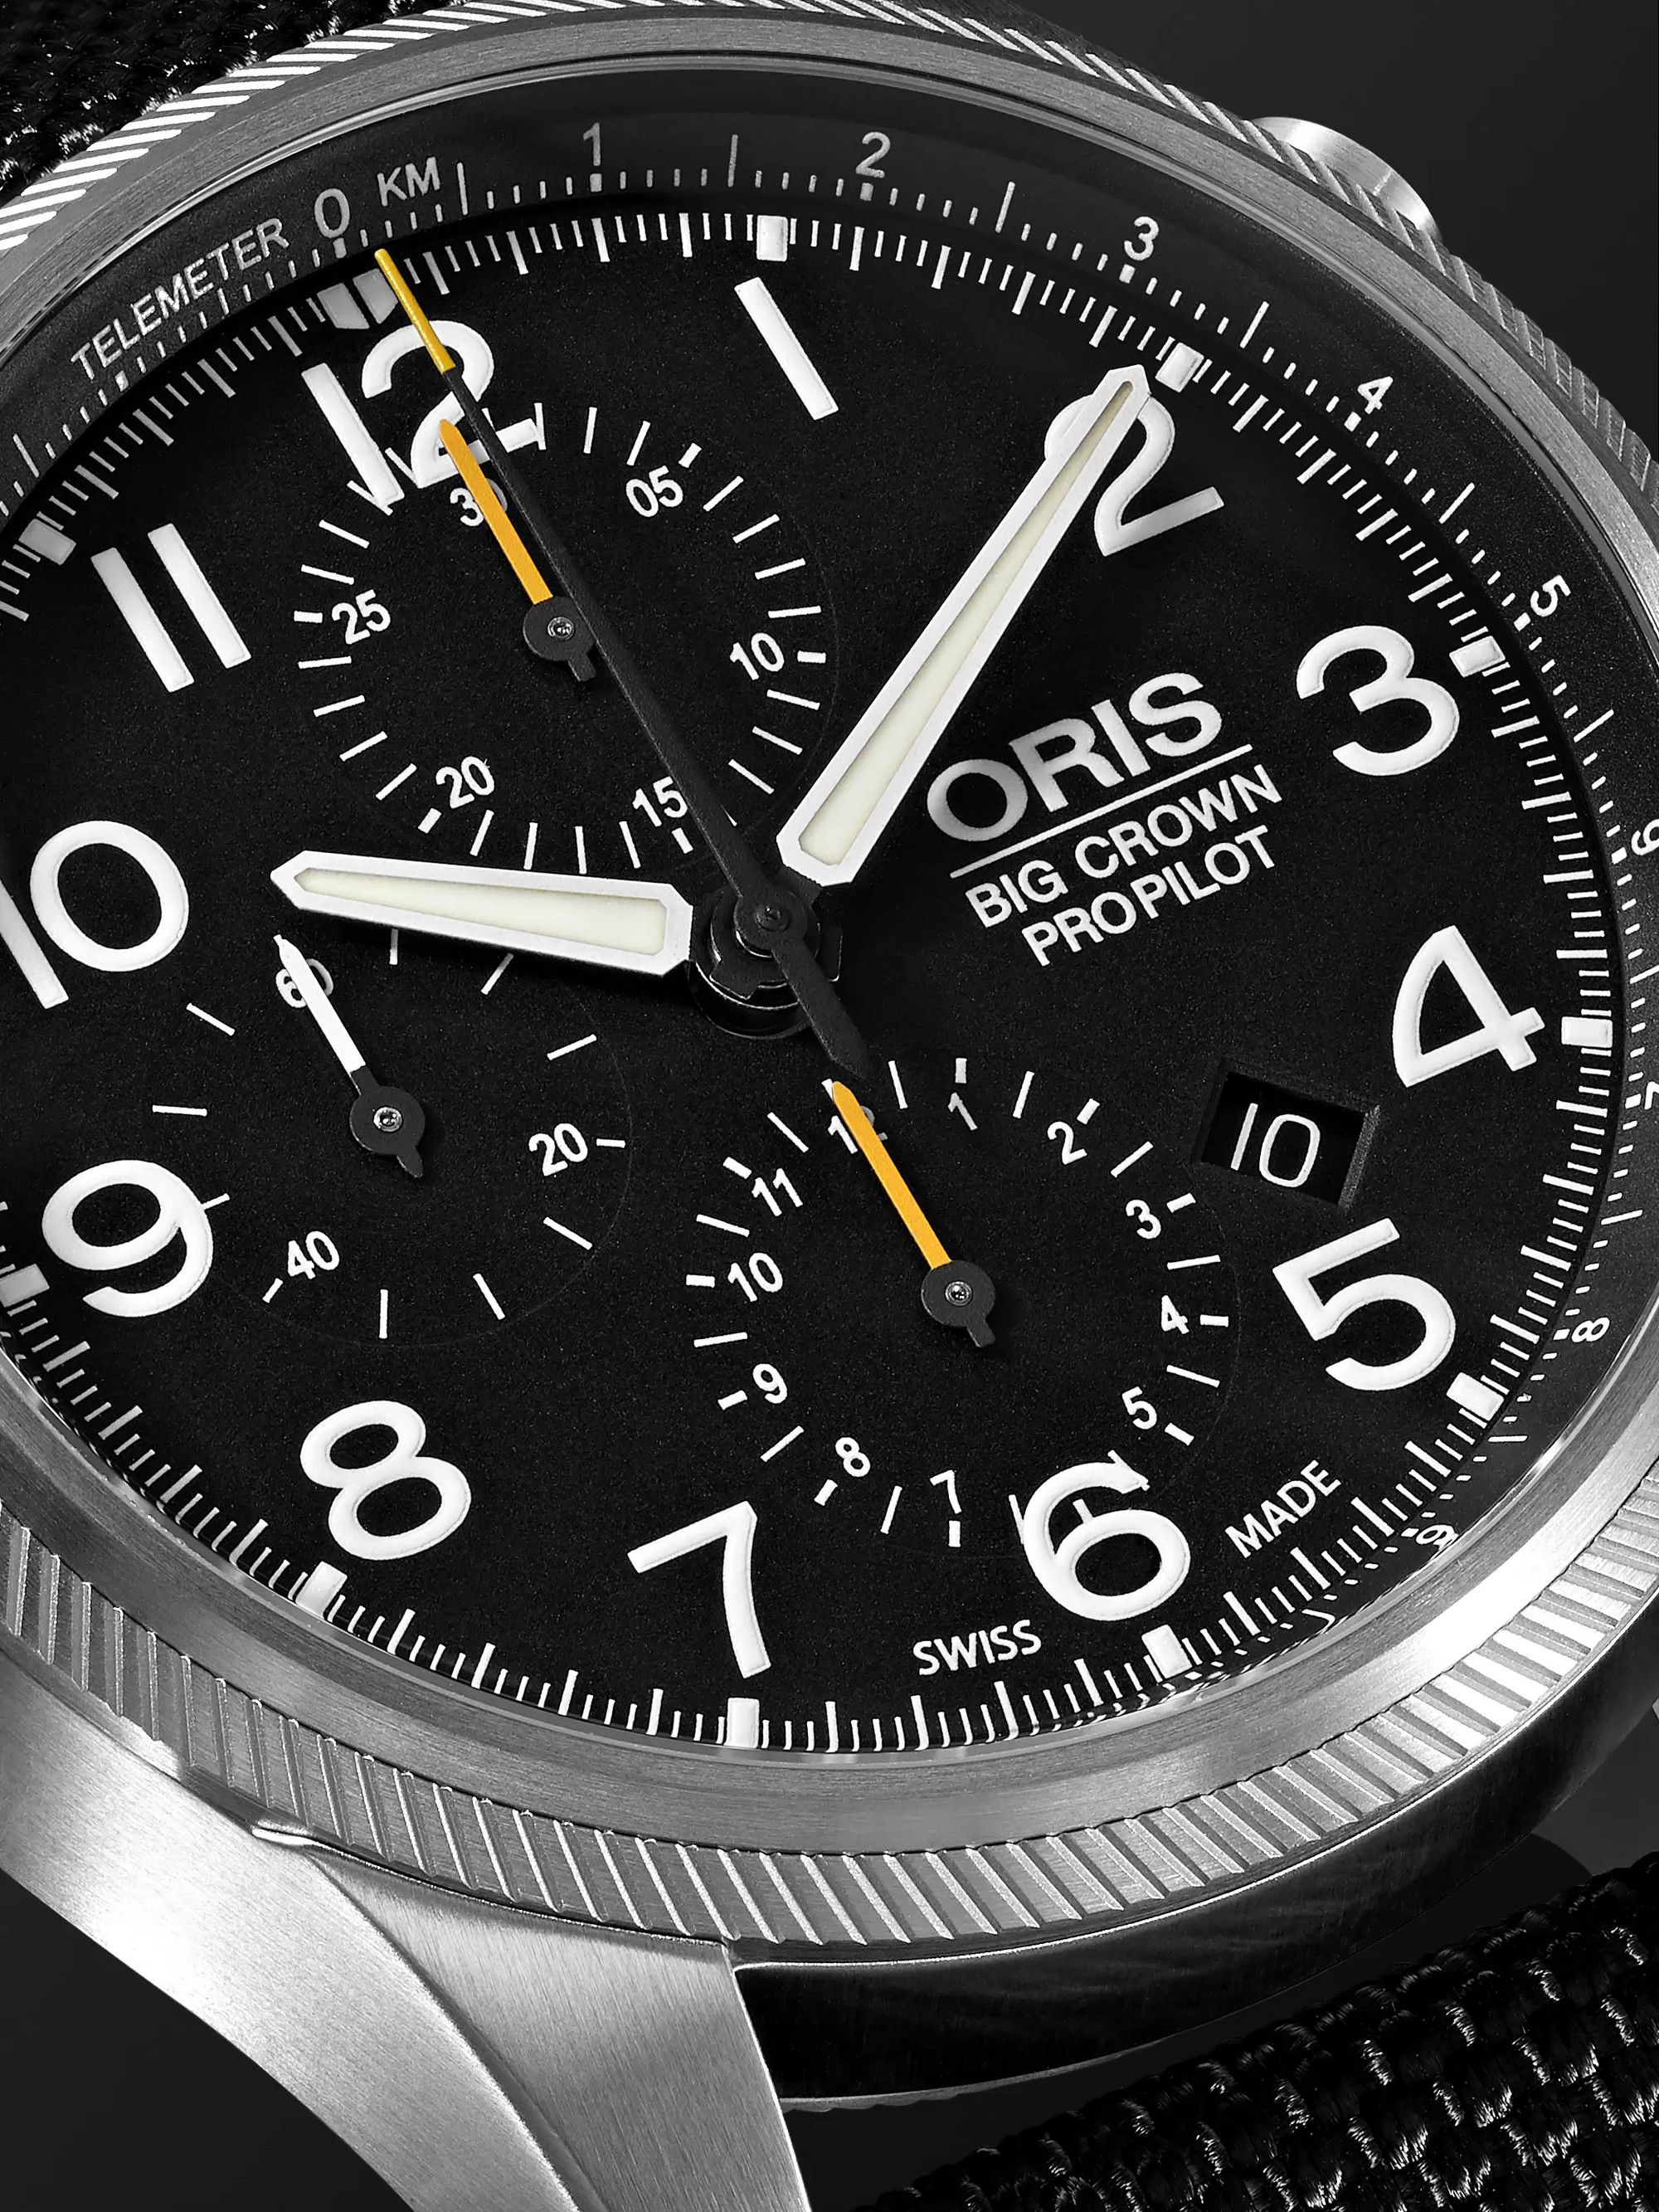 Oris Big Crown ProPilot Chronograph 44mm Stainless Steel and Nylon Watch